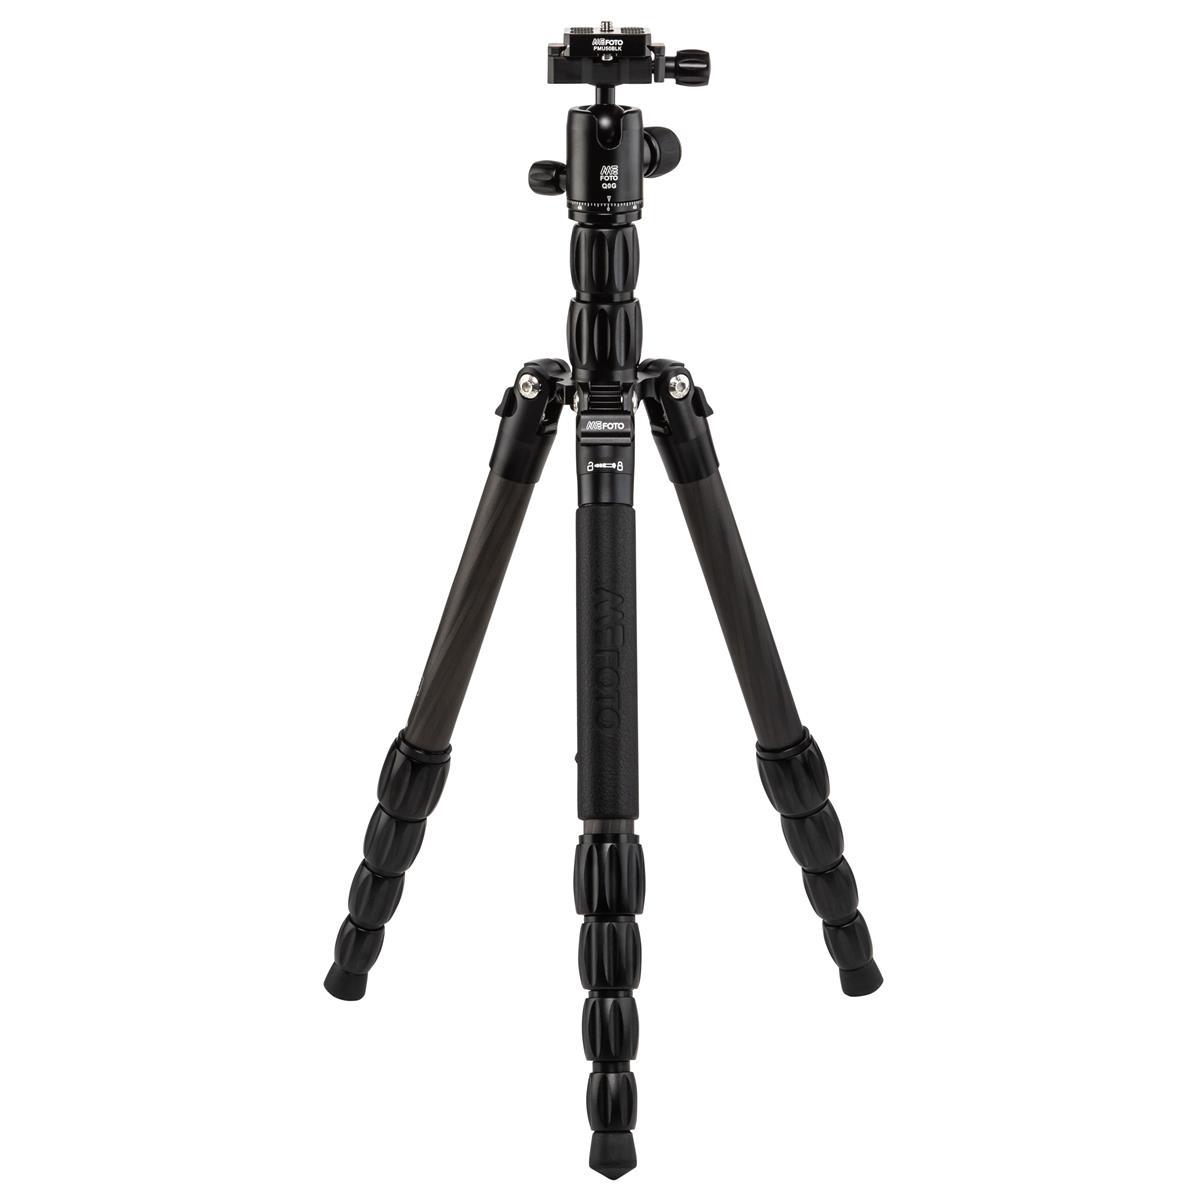 MeFOTO BPSCBLK BackPacker S Travel Tripod (Black Carbon Fiber)